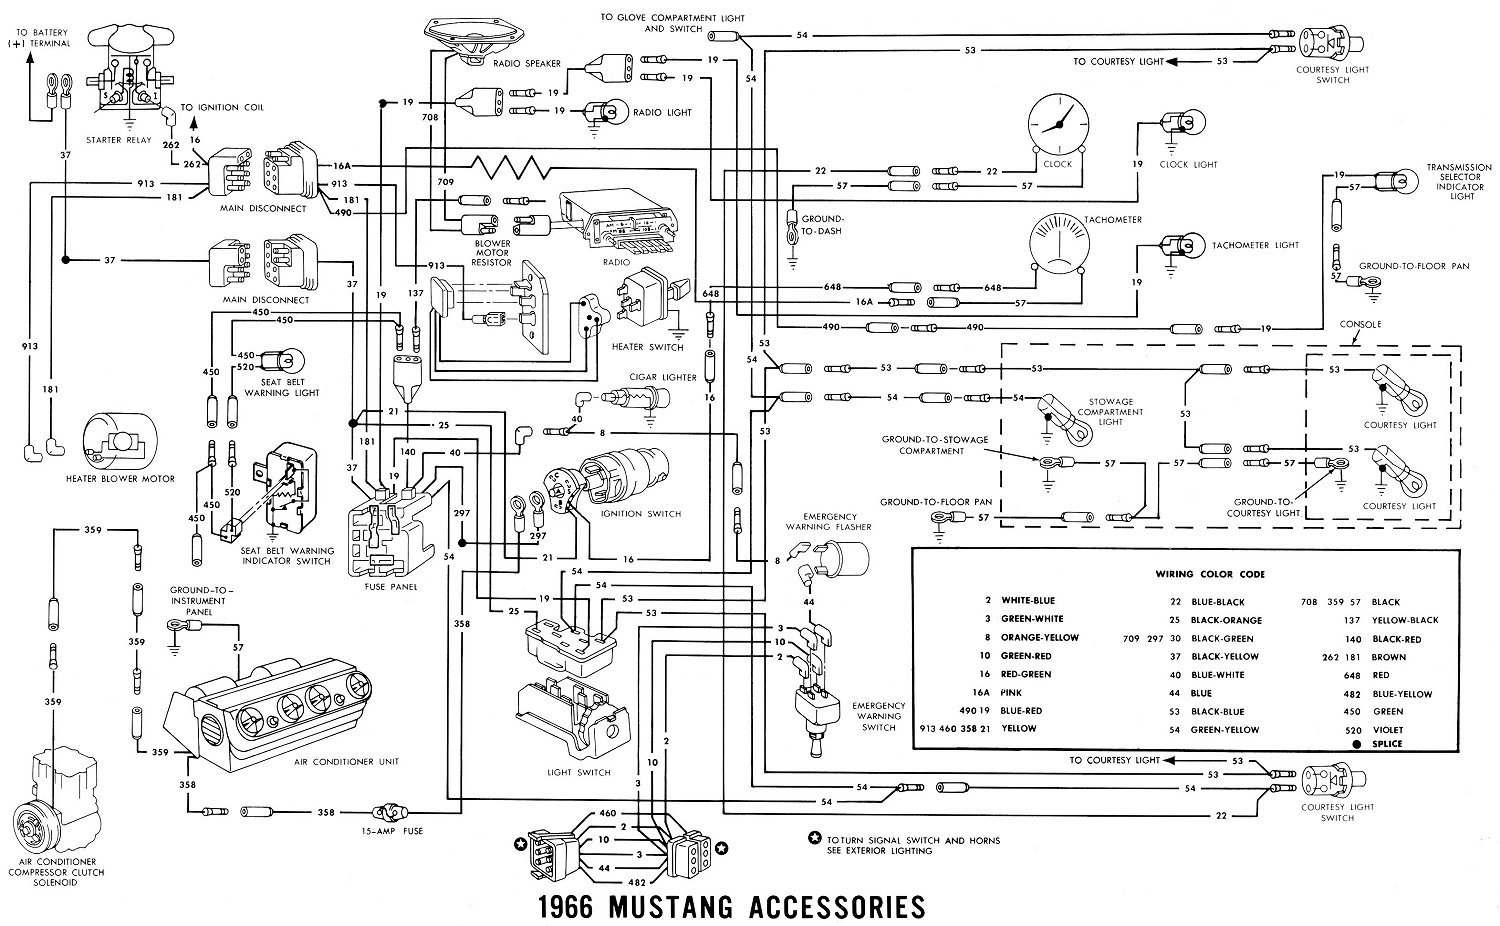 112253d1286219572 1966 mustang curtesy light problem 1966 ford mustang accessories wiring diagram wiring diagram for a 3910 ford tractor the wiring diagram  at reclaimingppi.co